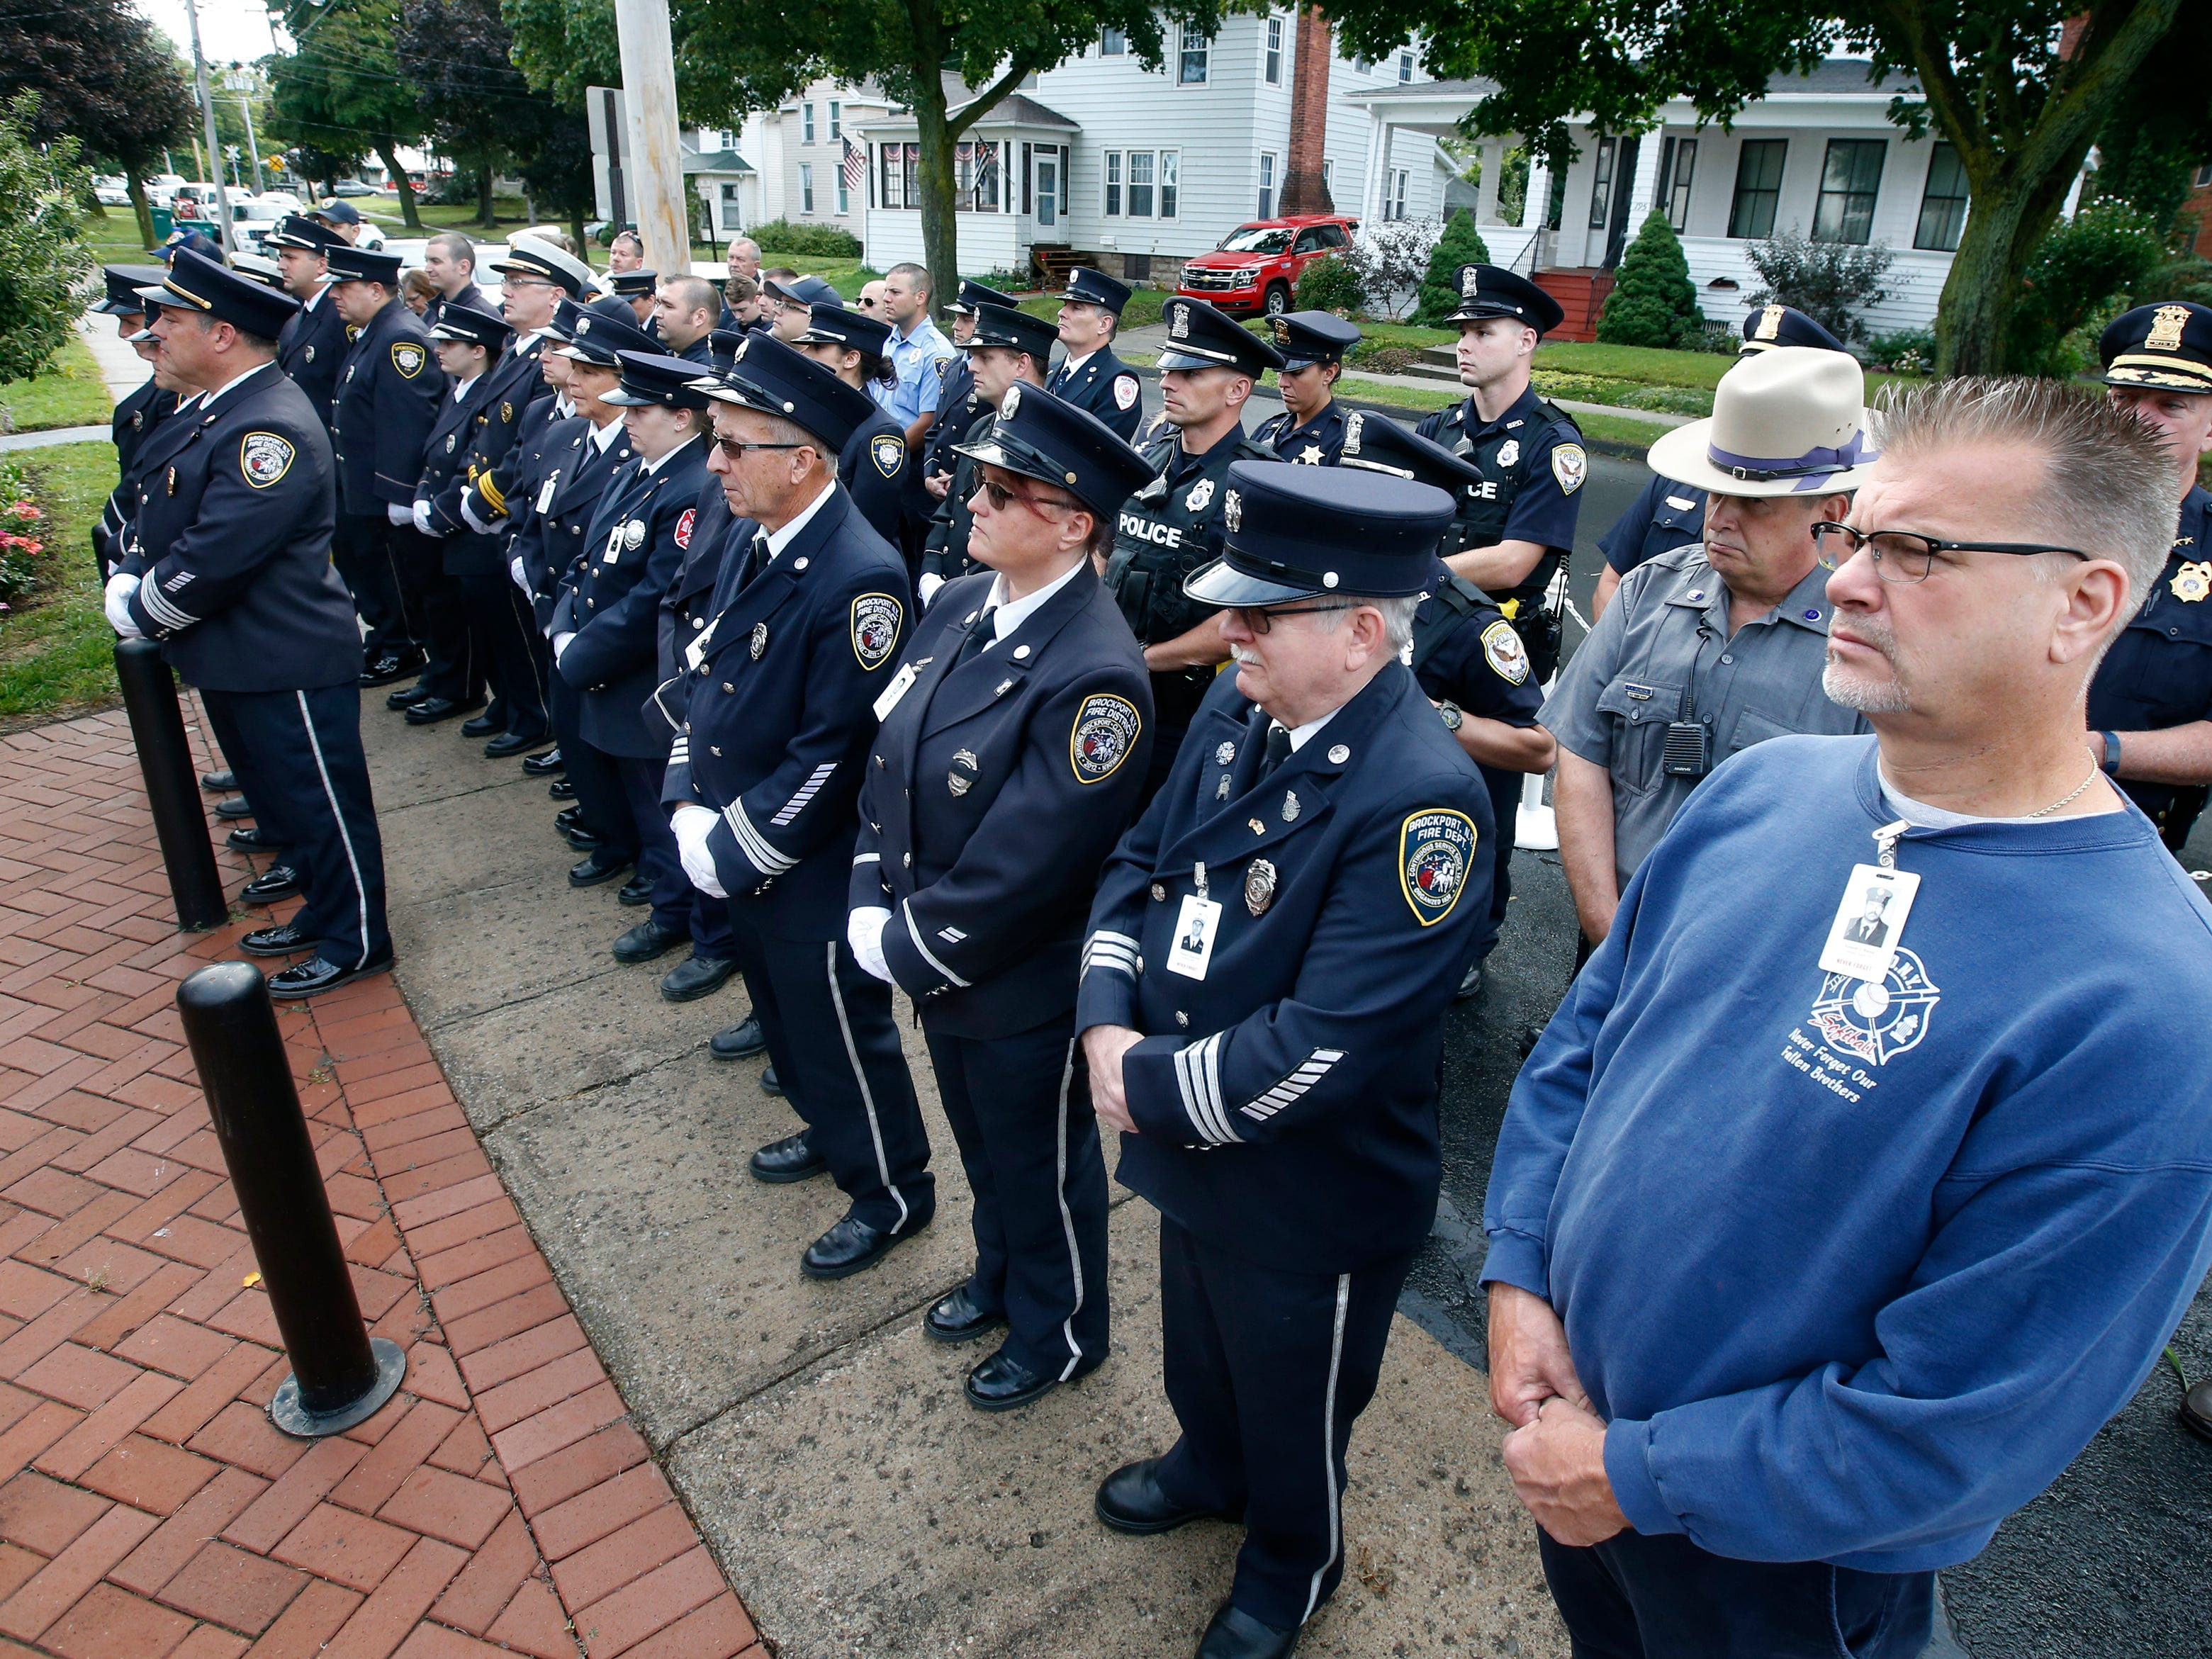 Firefighters and members of law enforcement stand in formation to pay their respects during the September 11th remembrance service at the Brockport Fire Department, Station 4.